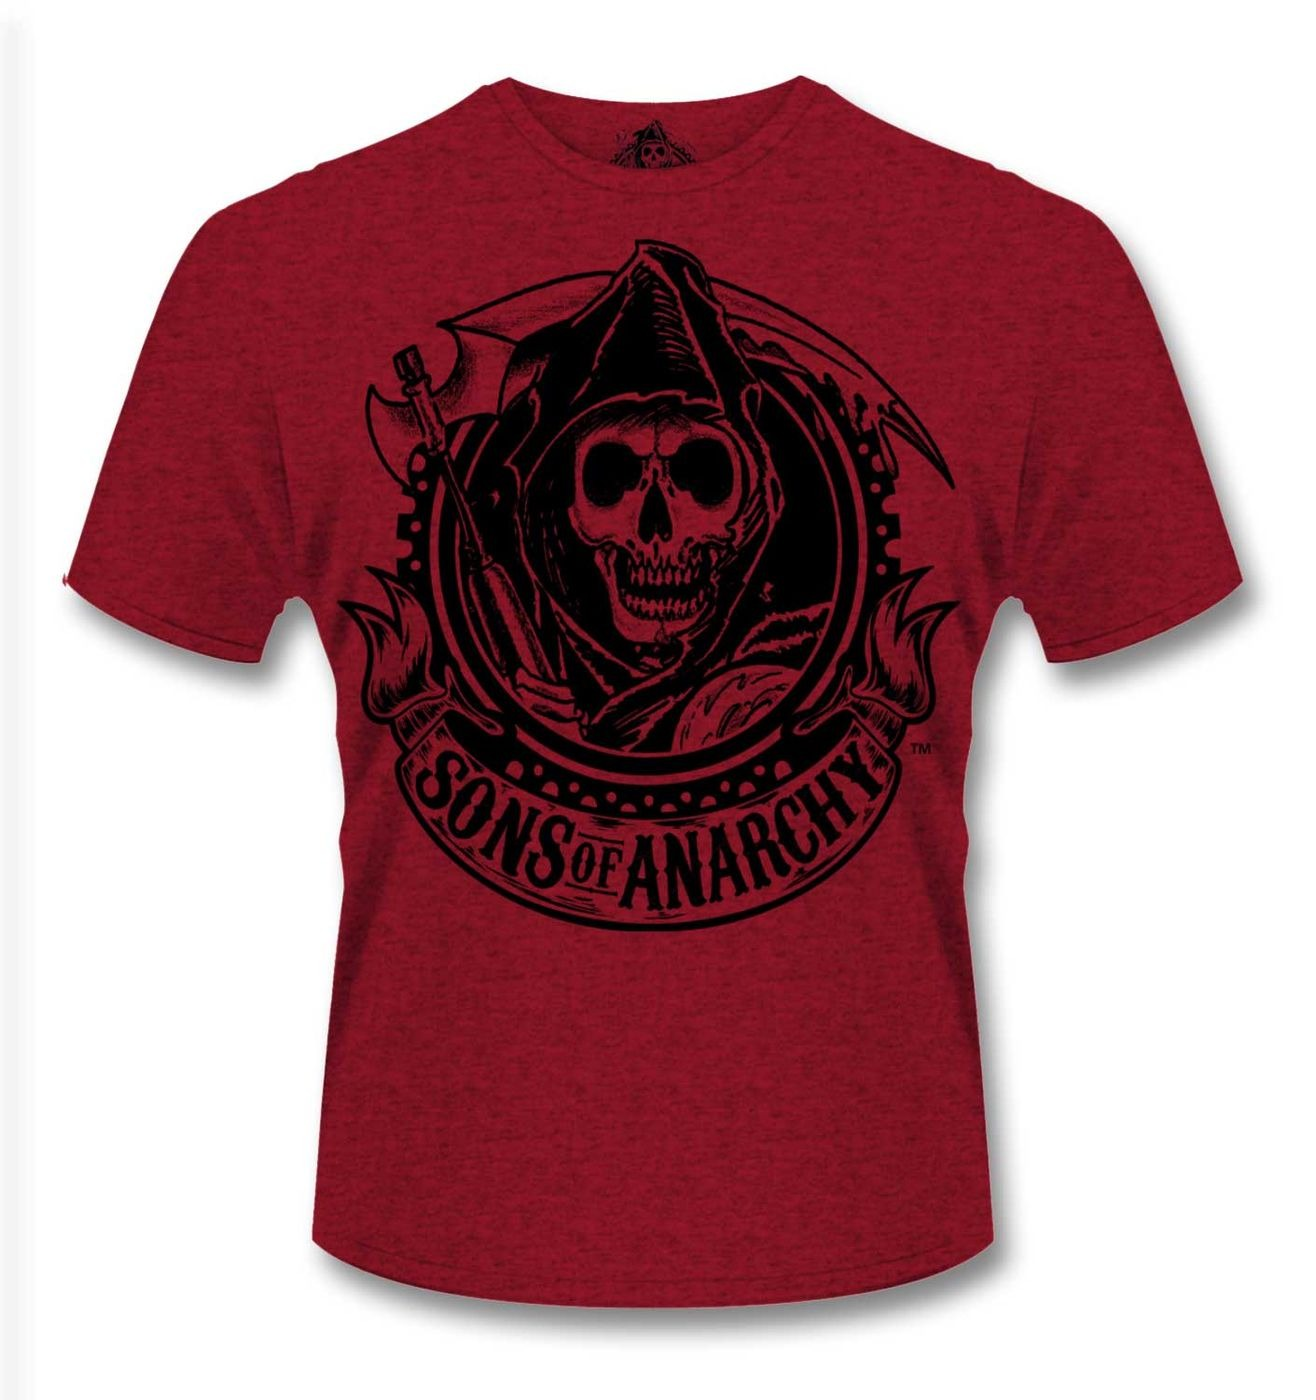 Official Sons Of Anarchy Reaper Banner t-shirt